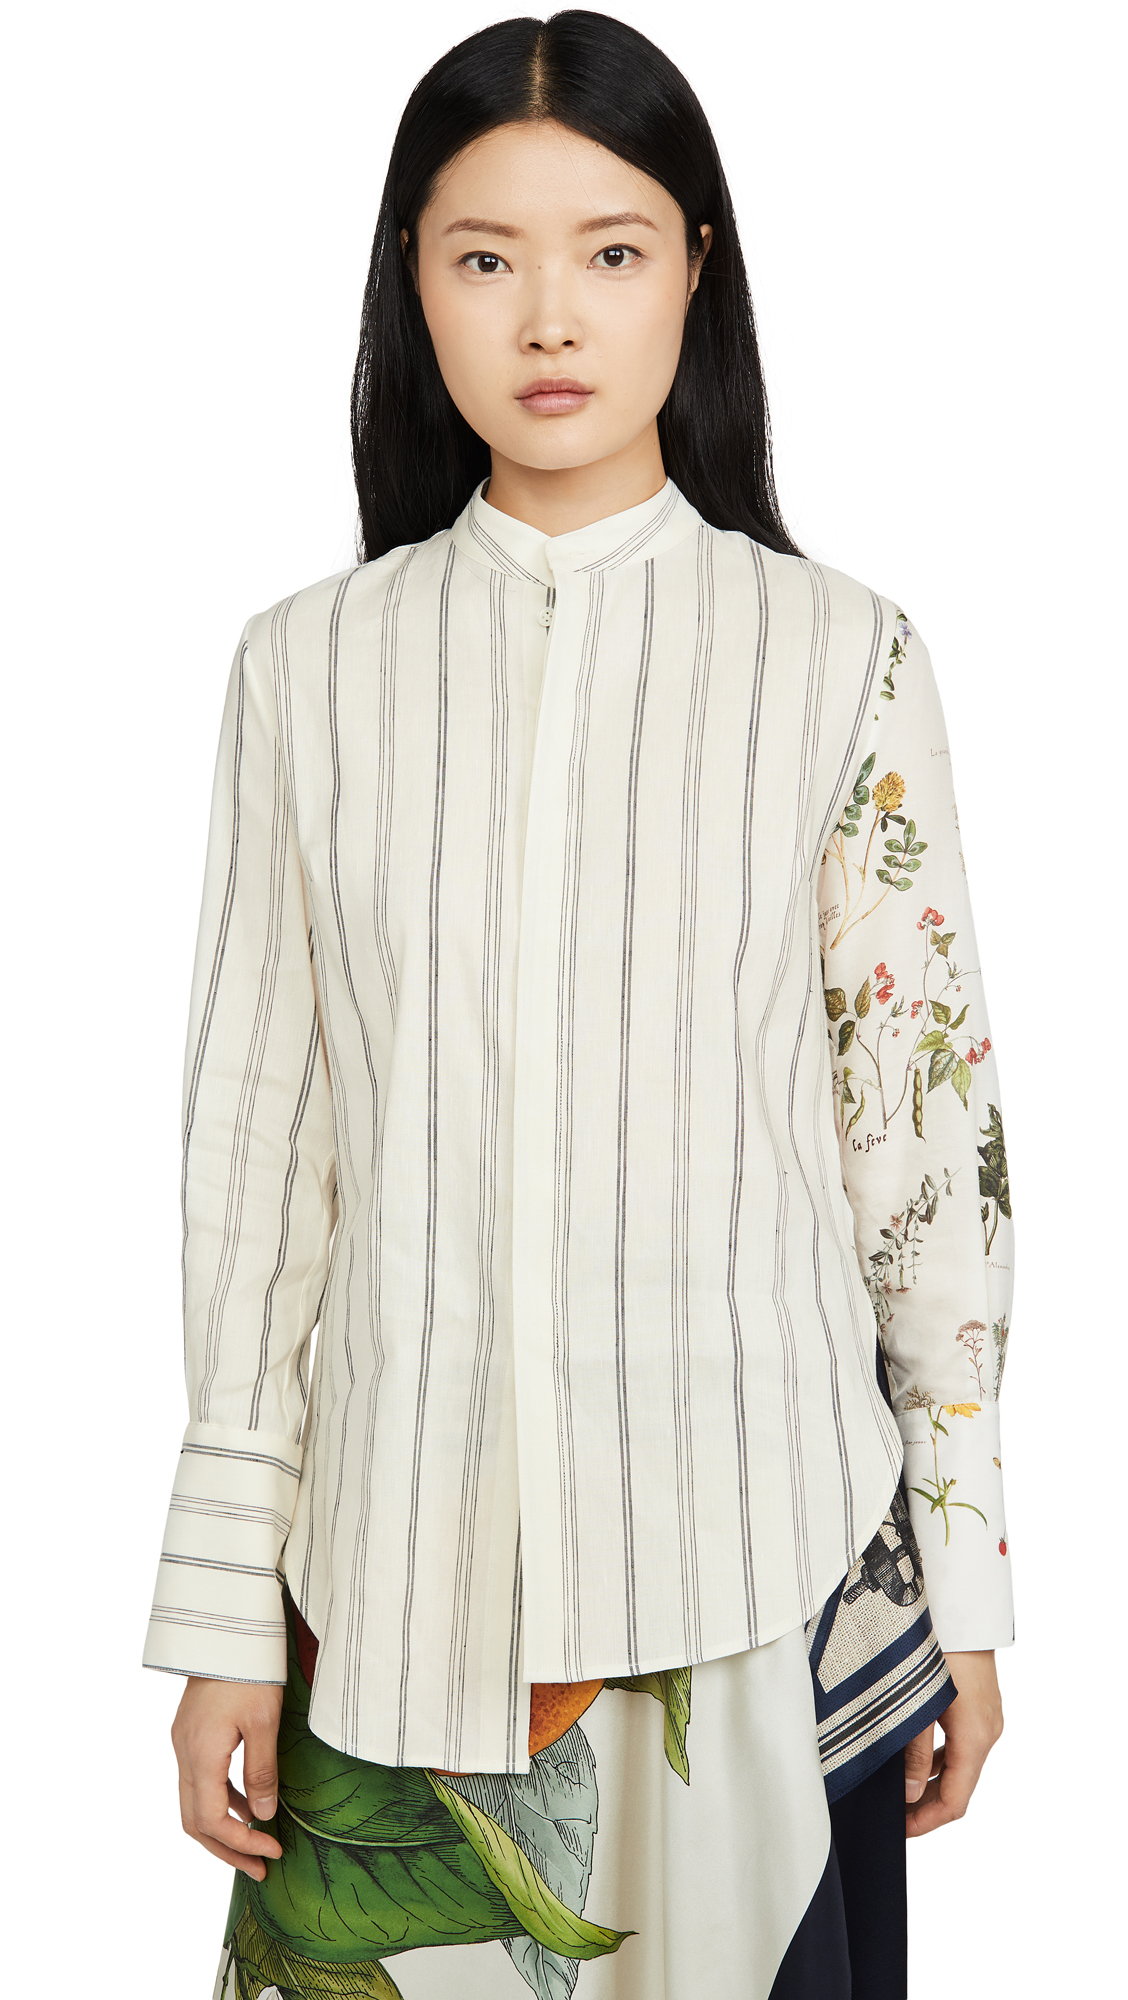 Monse Half & Half Botanic And Stripe Shirt – 40% Off Sale